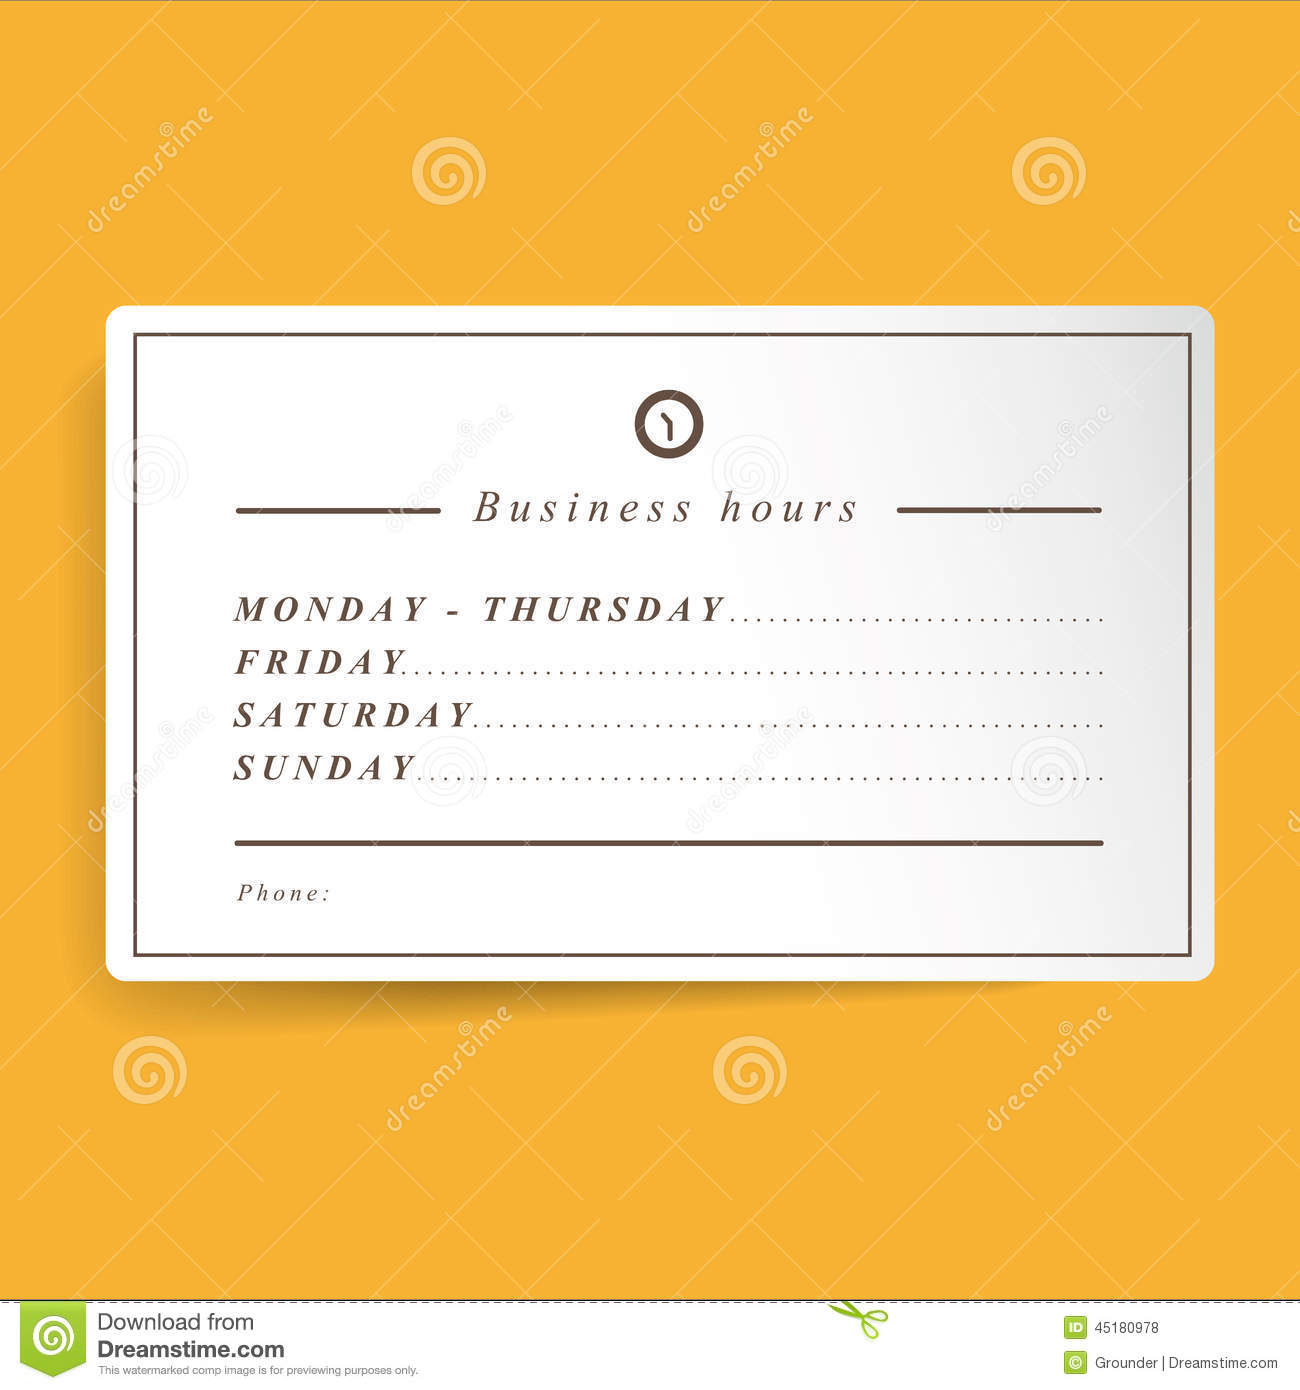 Business Hours Template Stock Illustration - Image: 45180978